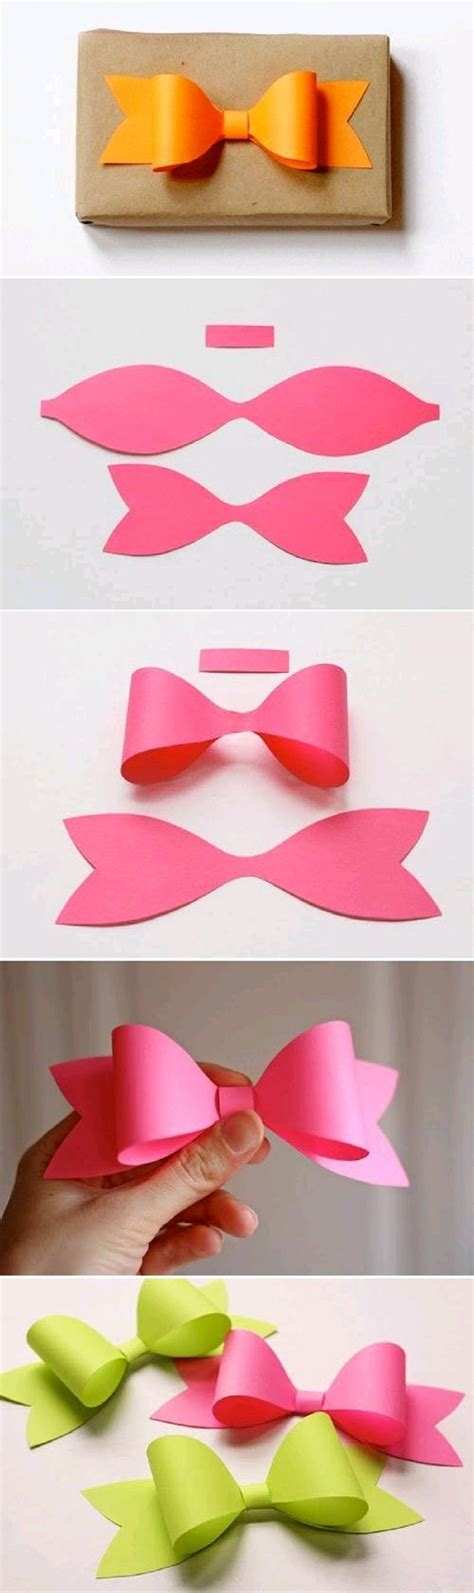 Foam Paper Crafts - color and creativity crafts made from foam paper the